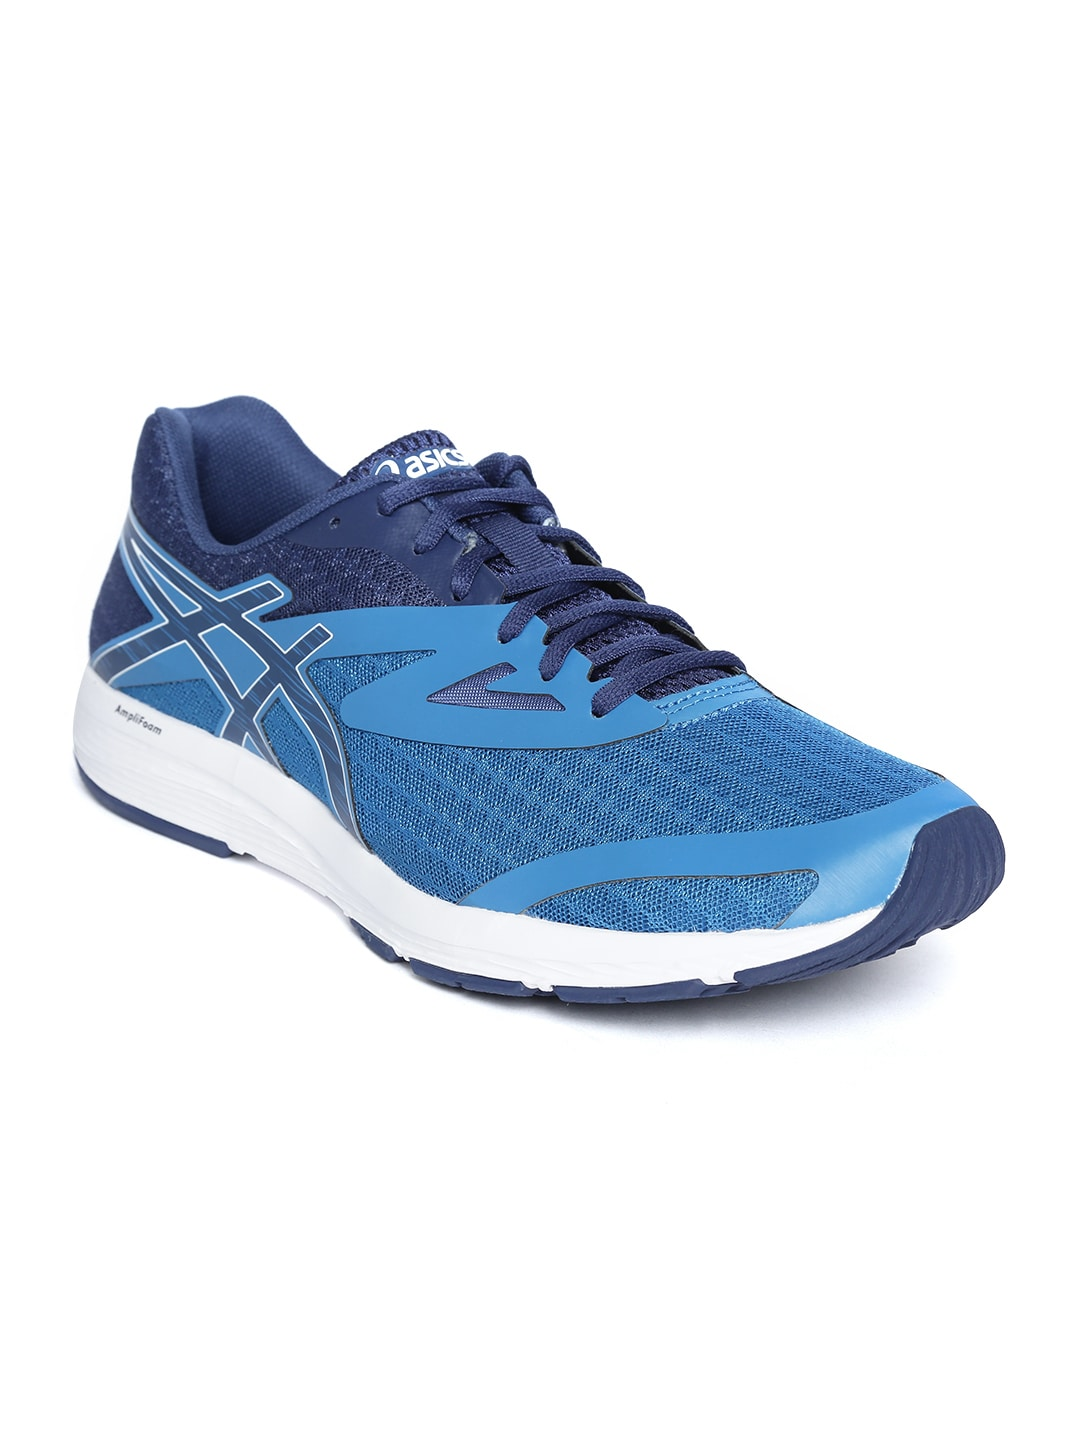 212007ec8cd Asics Shoes - Buy Asics Shoes for Men and Women Online - Myntra